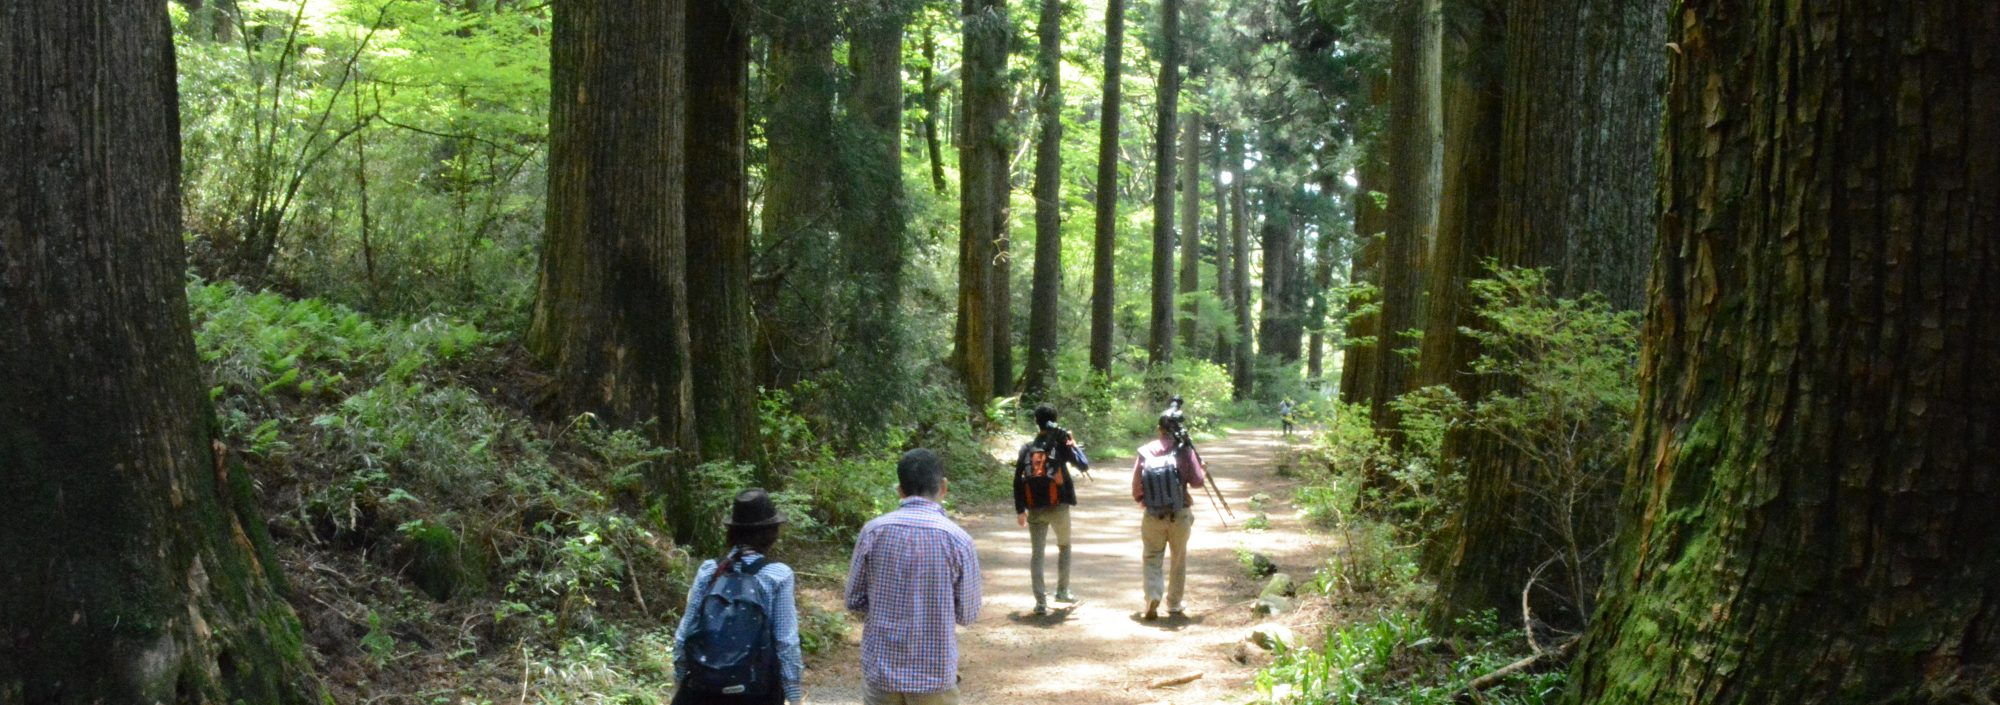 Day return from Tokyo guided heritage hiking tour